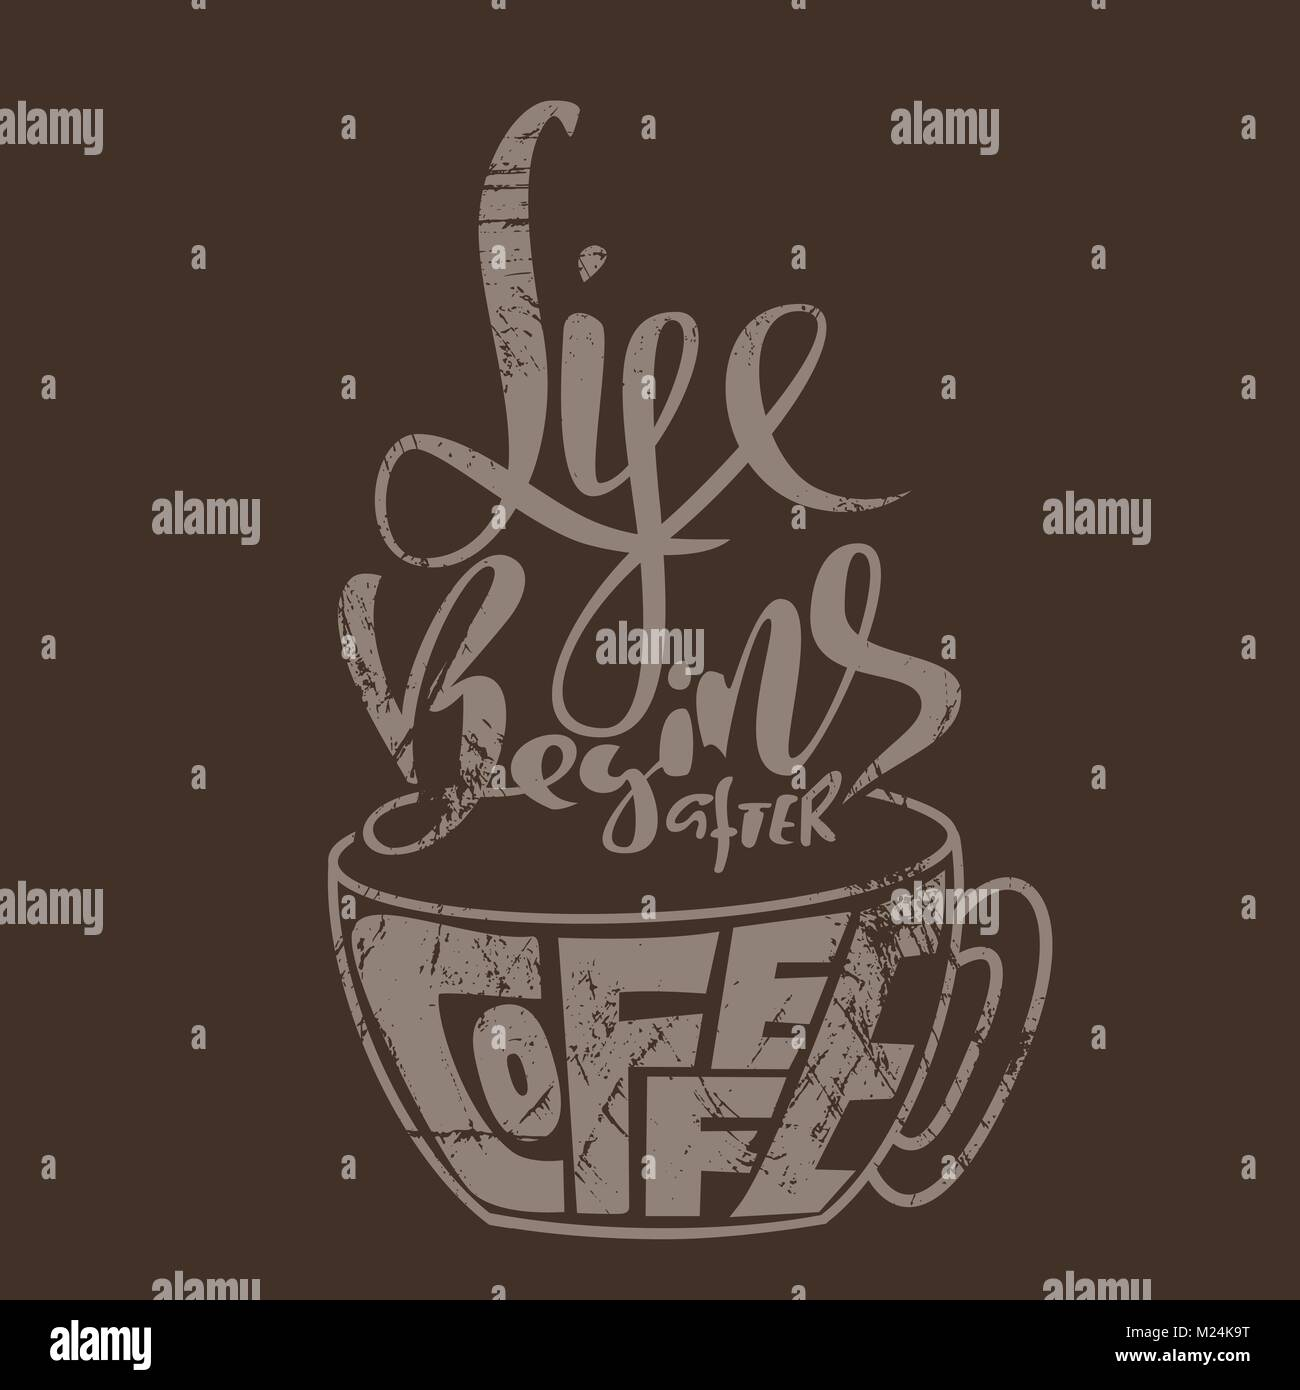 Life Begins After Coffee. Lettering With Coffee Cup. Modern Grunge  Calligraphy Poster. Vector Illustration